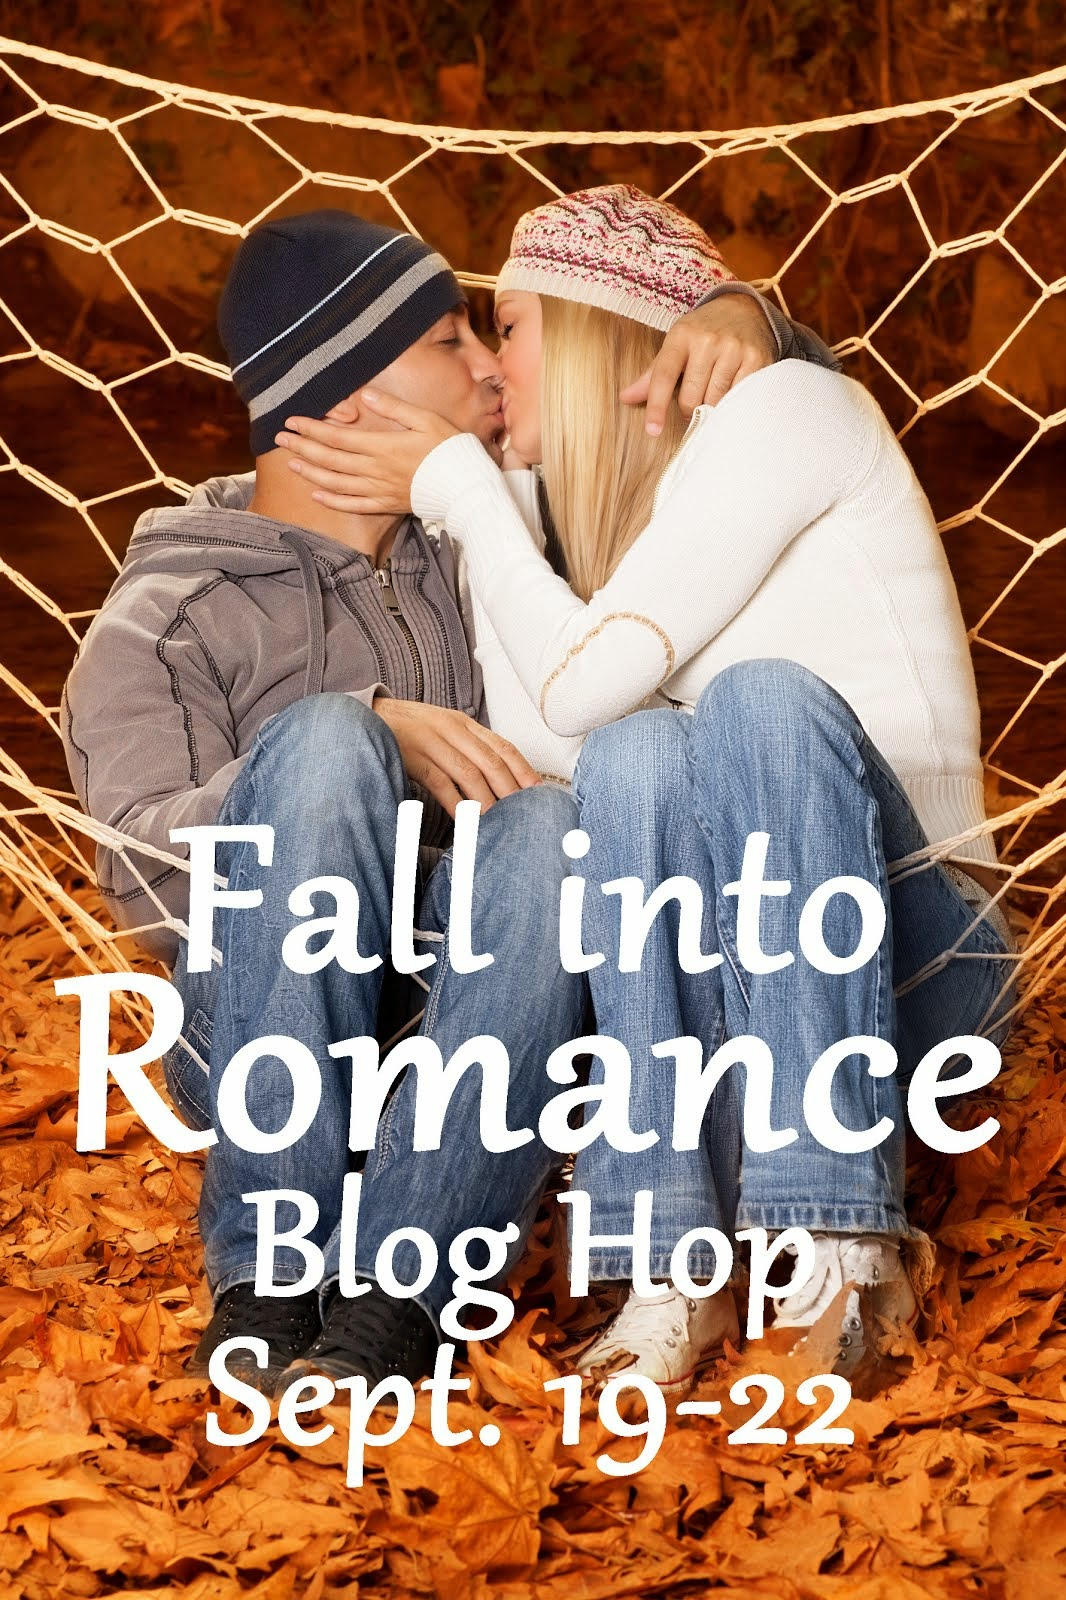 Fall into Romance Blog Hop